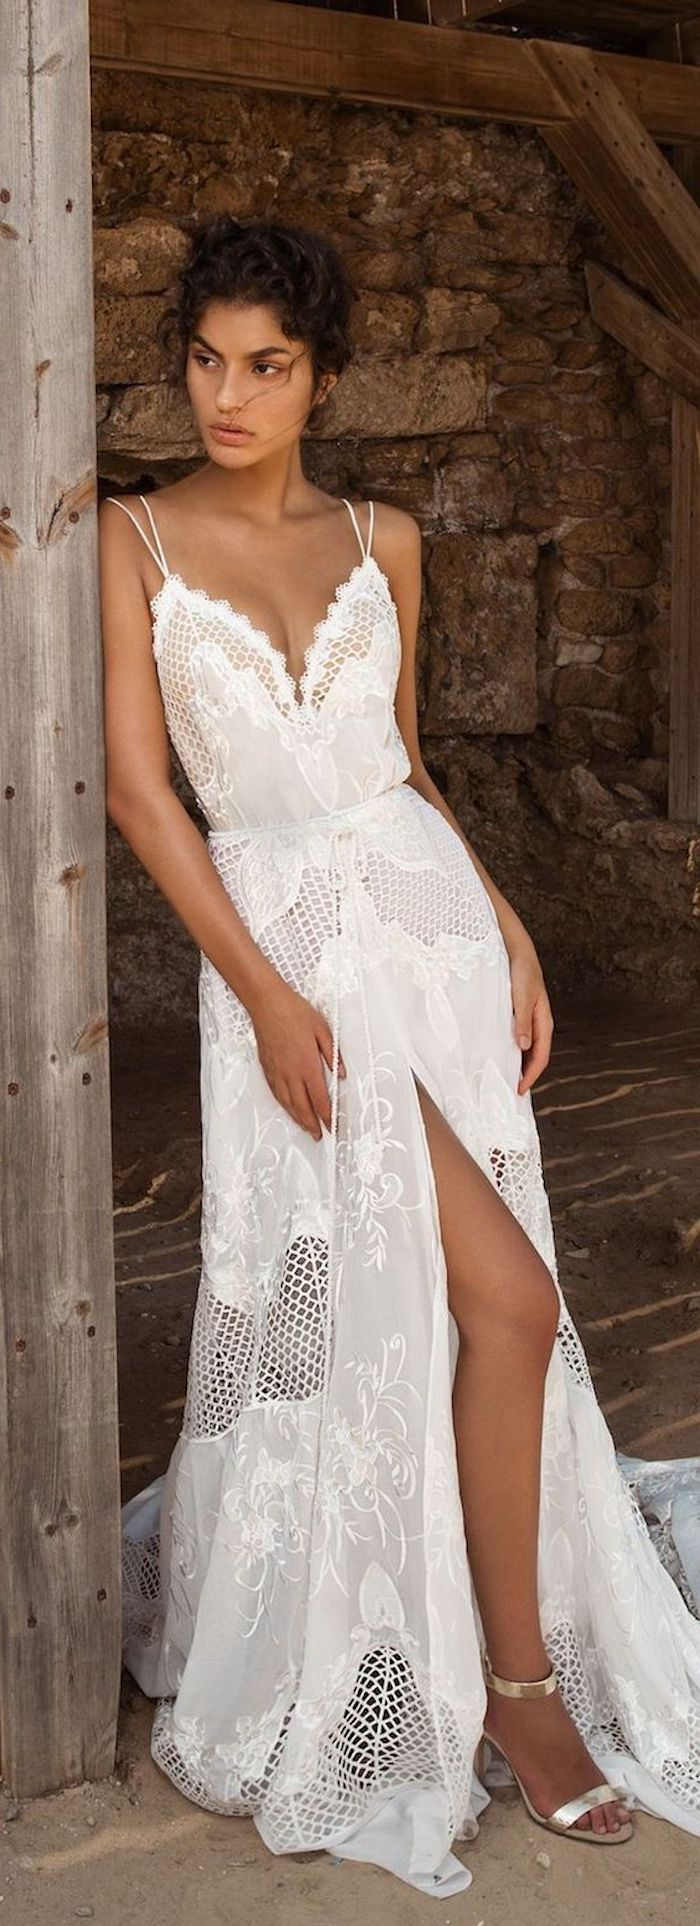 maxi dress in white, with lace inserts and embroidery, featuring thin straps and a slit, casual beach wedding dresses, worn by tanned brunette young woman, with curly dark hair put up, and silver heeled sandals